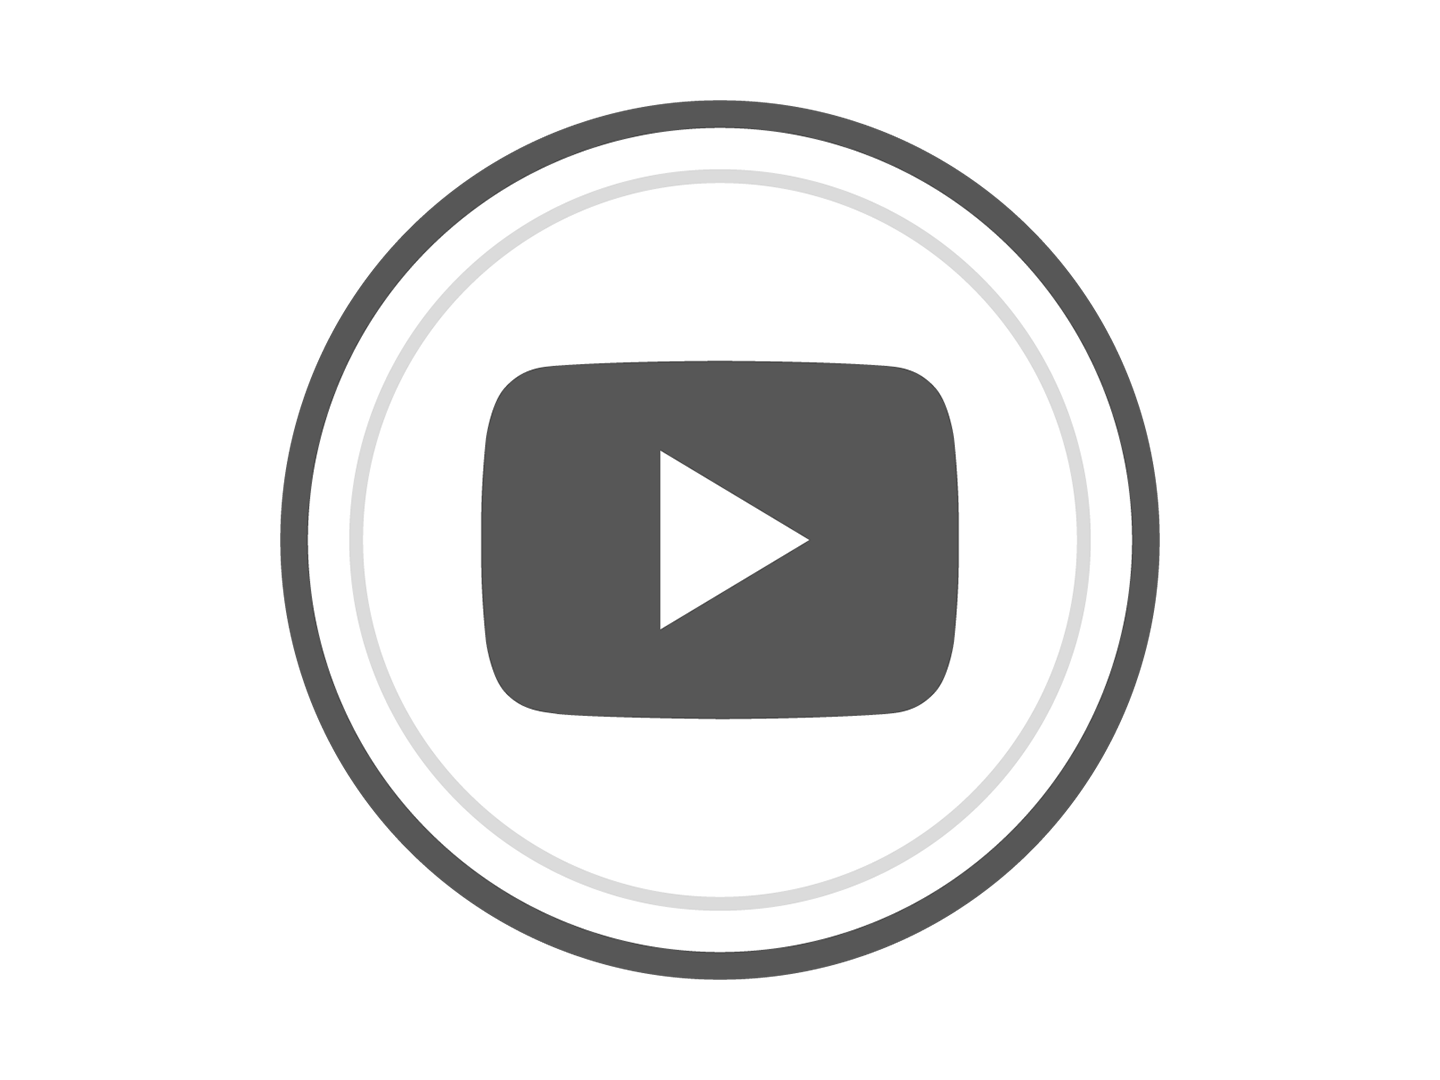 Free Youtube Subscribe Button Round Flat Icon Download by Icons by.